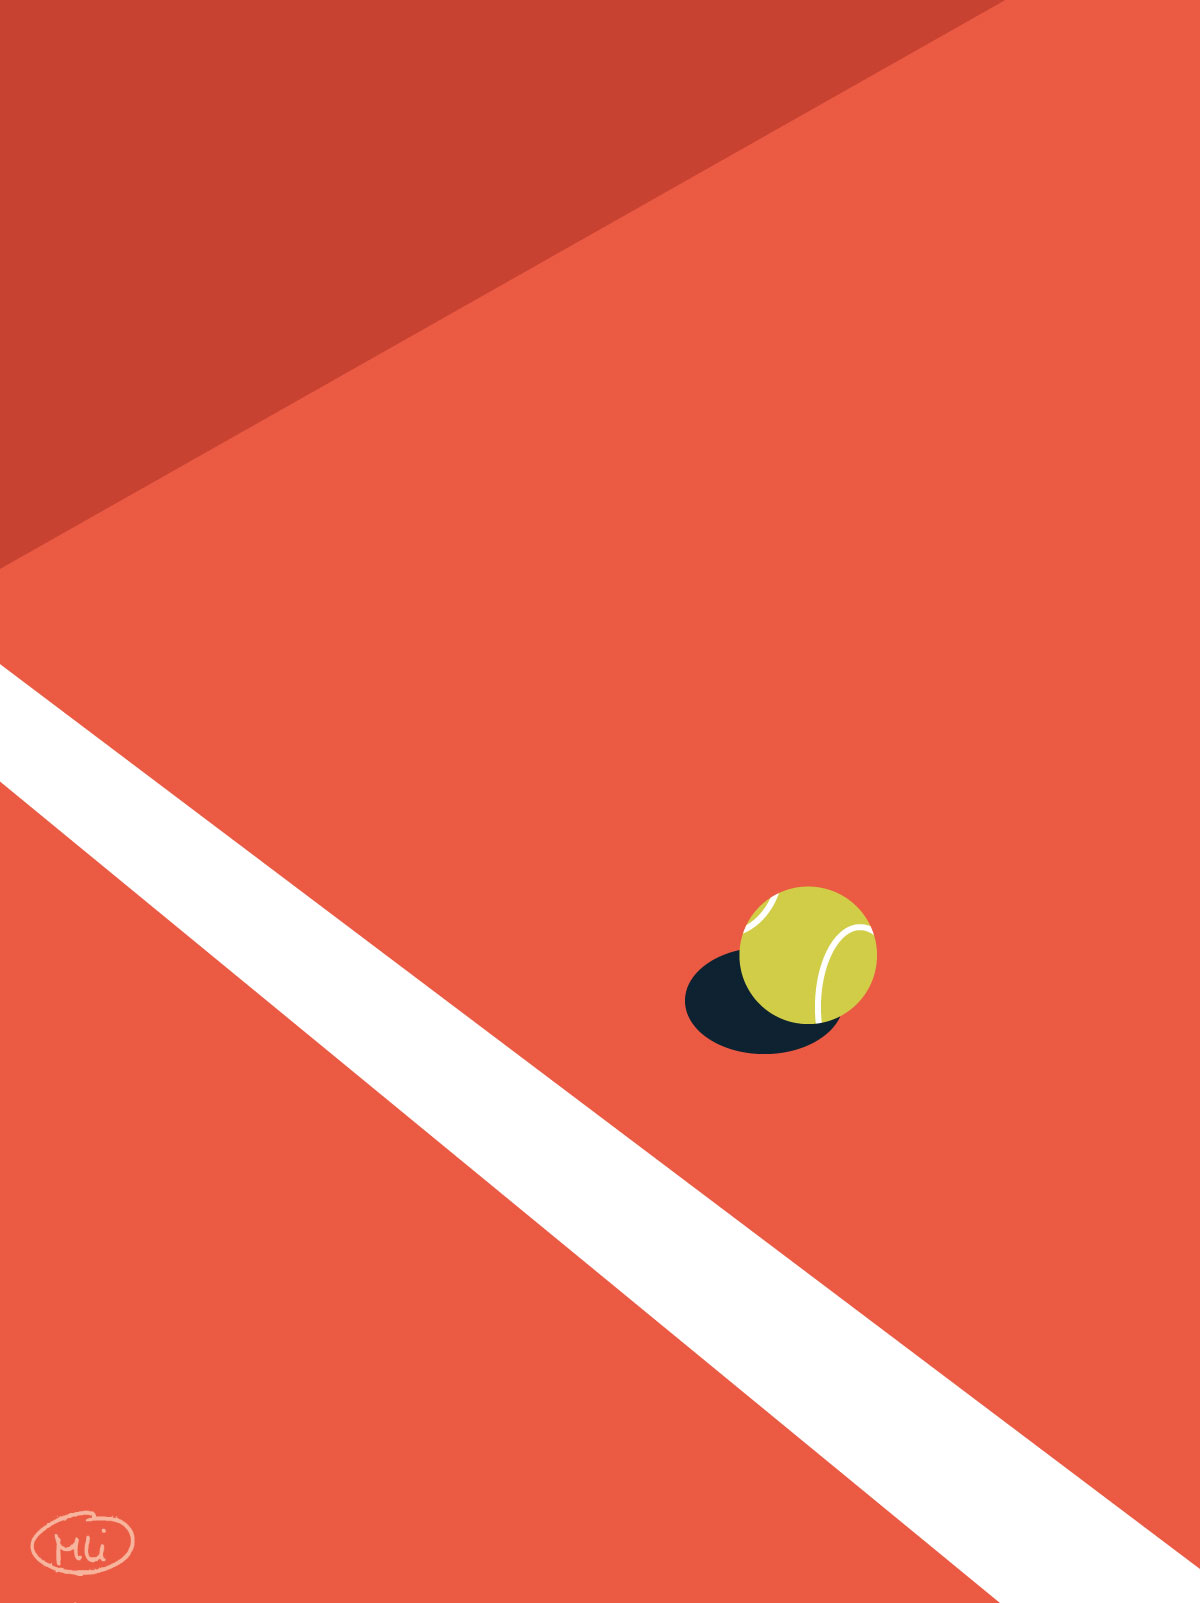 Roland Garros illustration